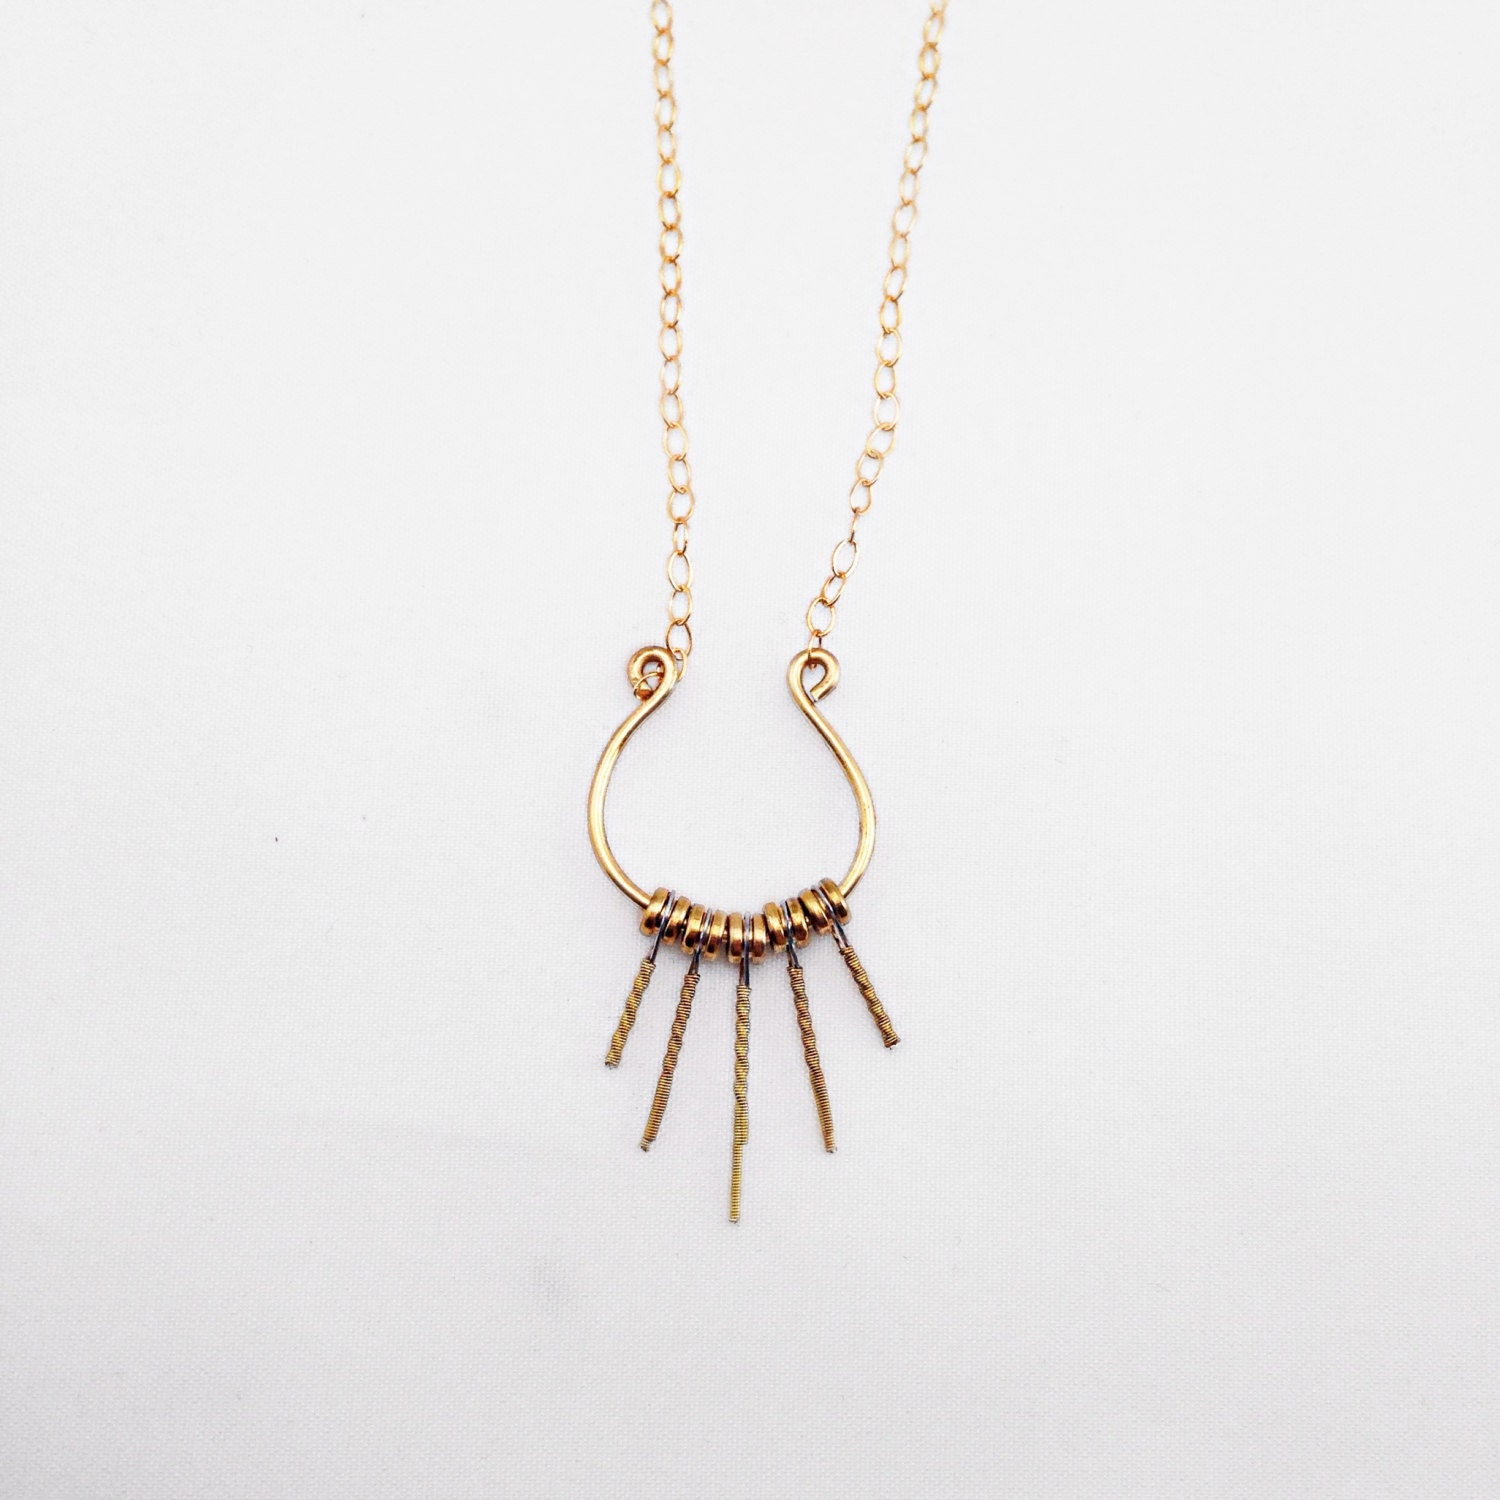 recycled guitar string jewelry necklace lyre necklace gold. Black Bedroom Furniture Sets. Home Design Ideas